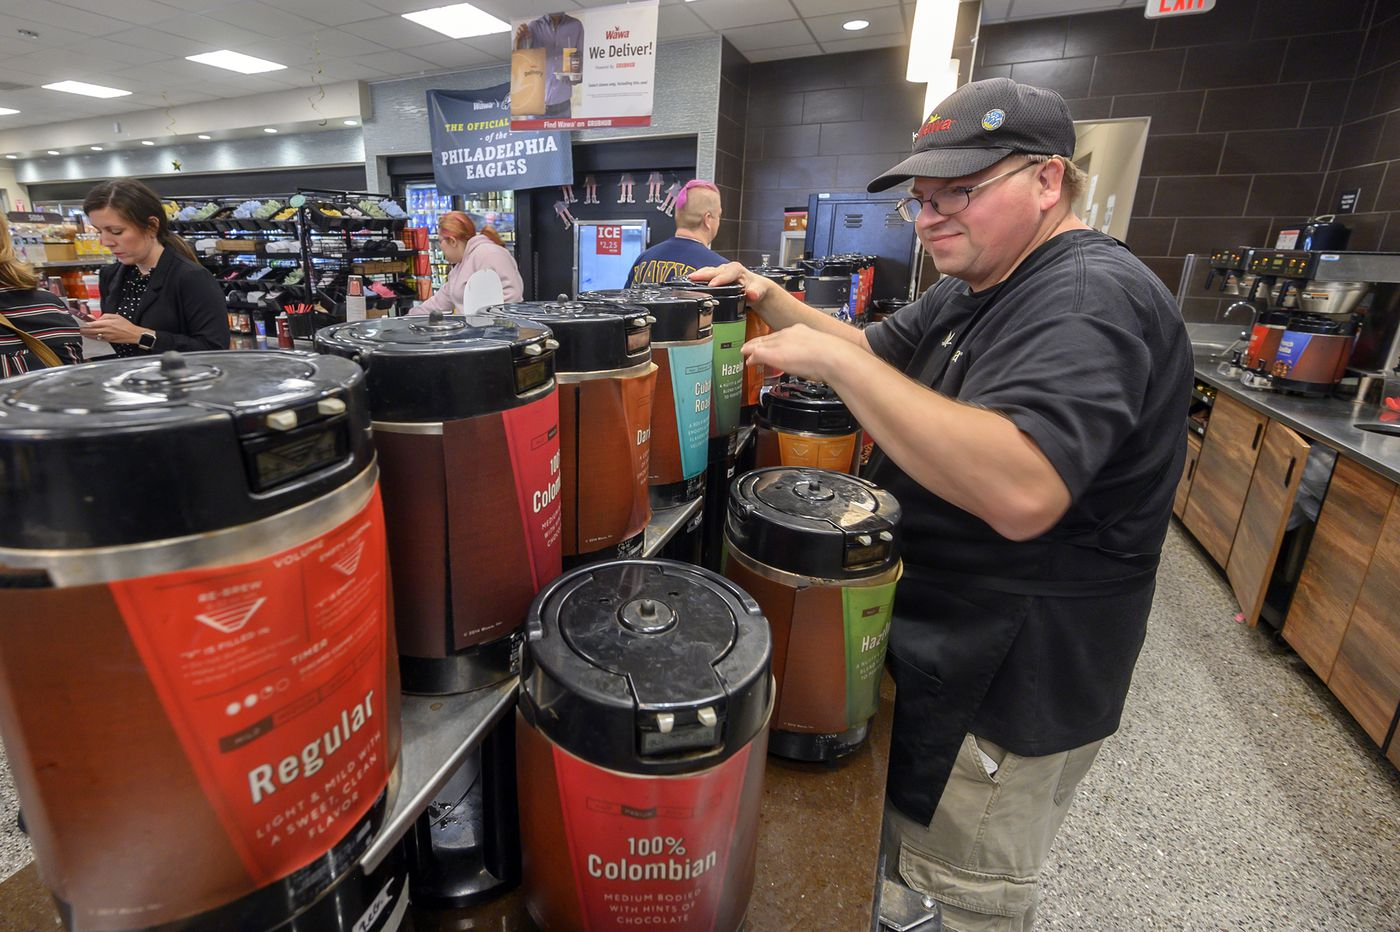 Without a Wawa manager's decision 40 years ago, 500 special-needs adults wouldn't have jobs today